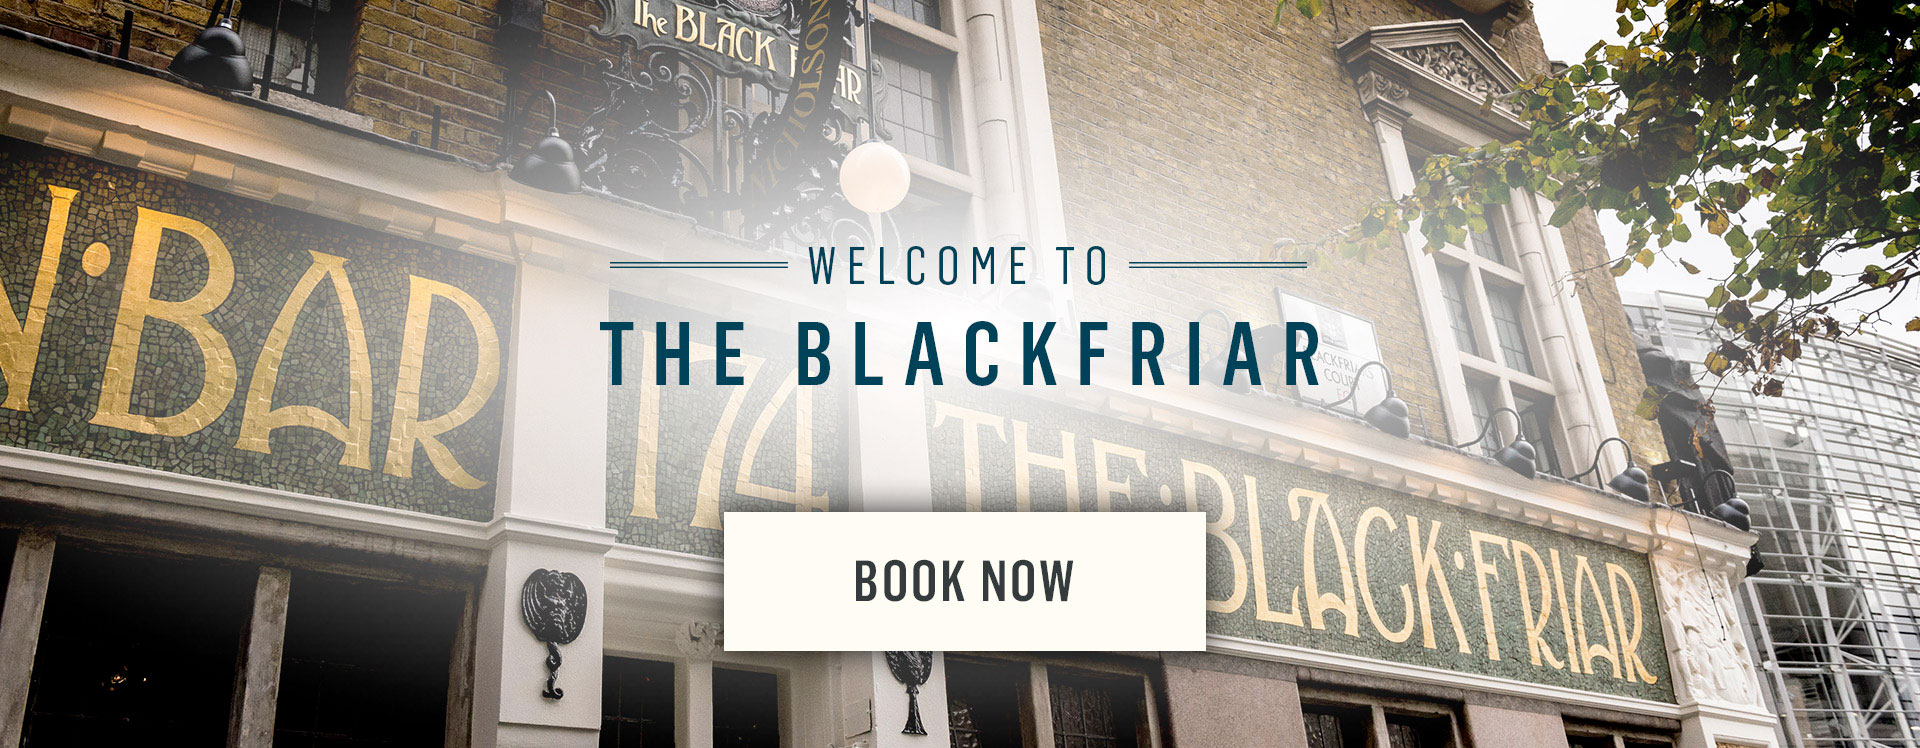 The Blackfriar in London - Nicholson's Pubs